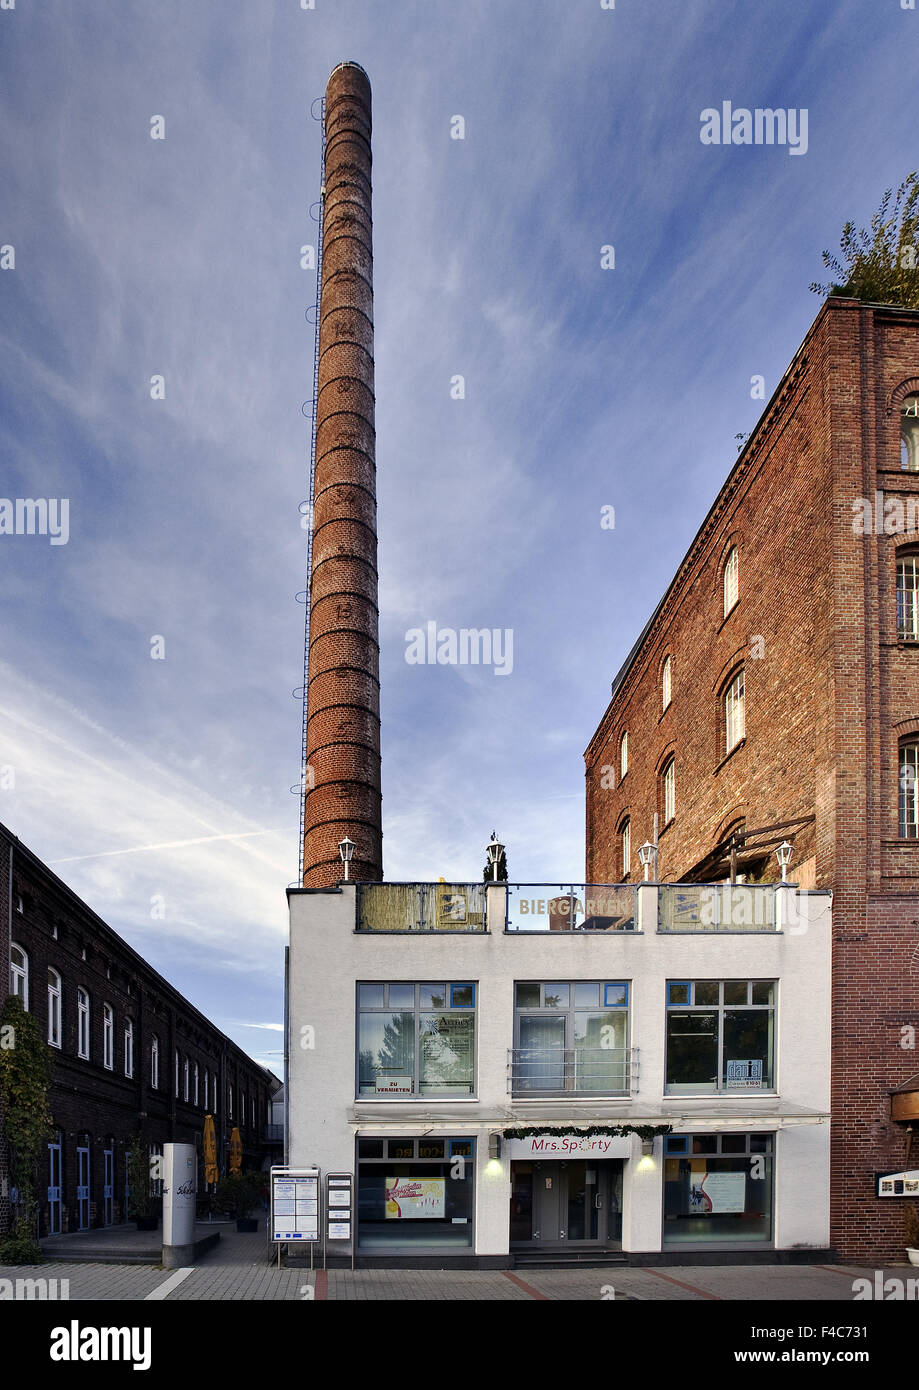 Linden Brewery, Unna, Germany - Stock Image